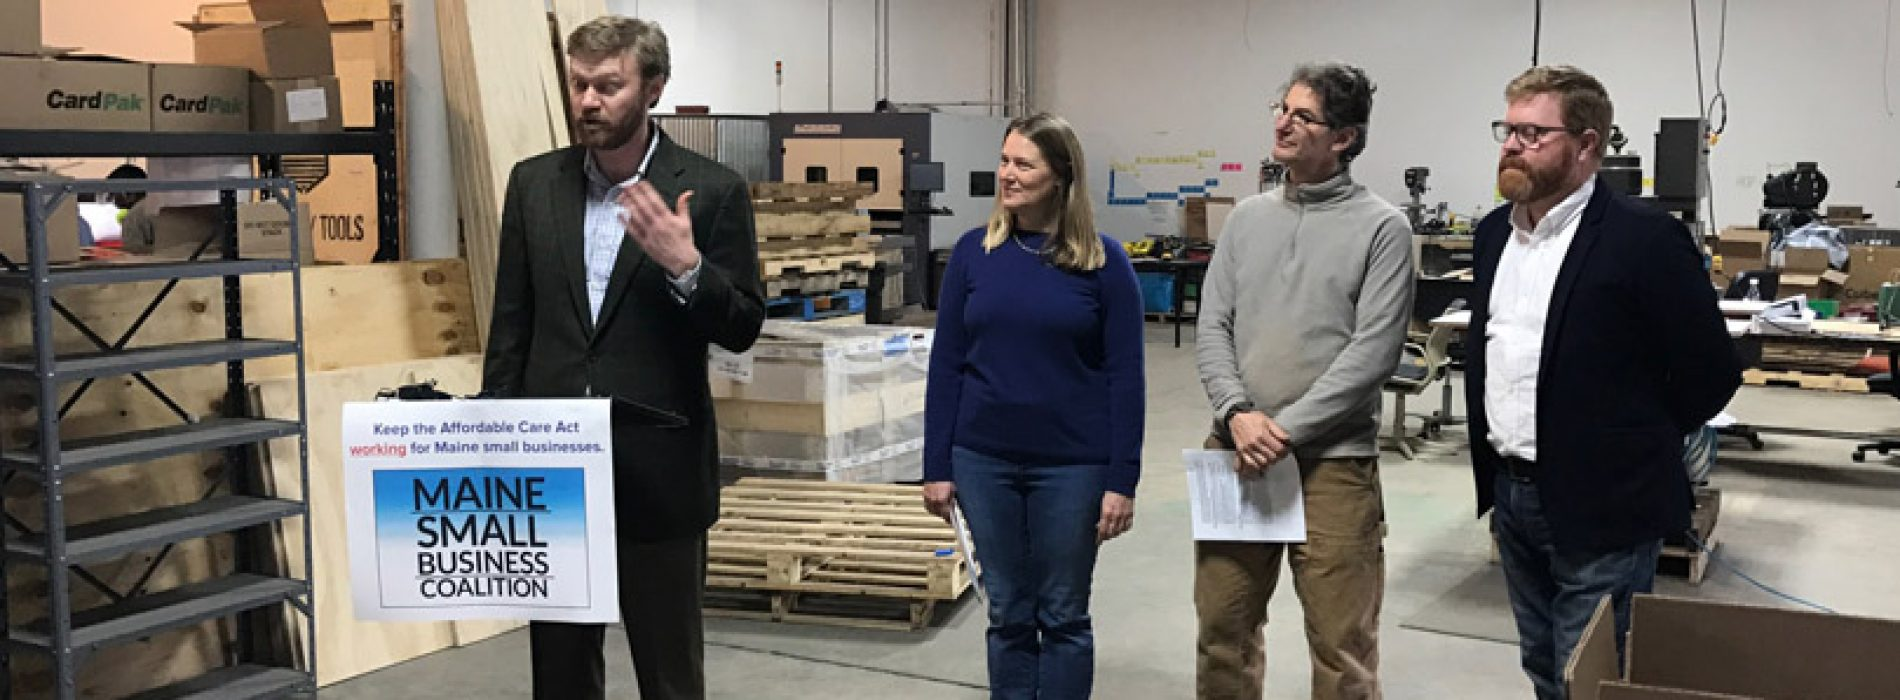 Maine small business owners ask Sen. Collins not to repeal health coverage